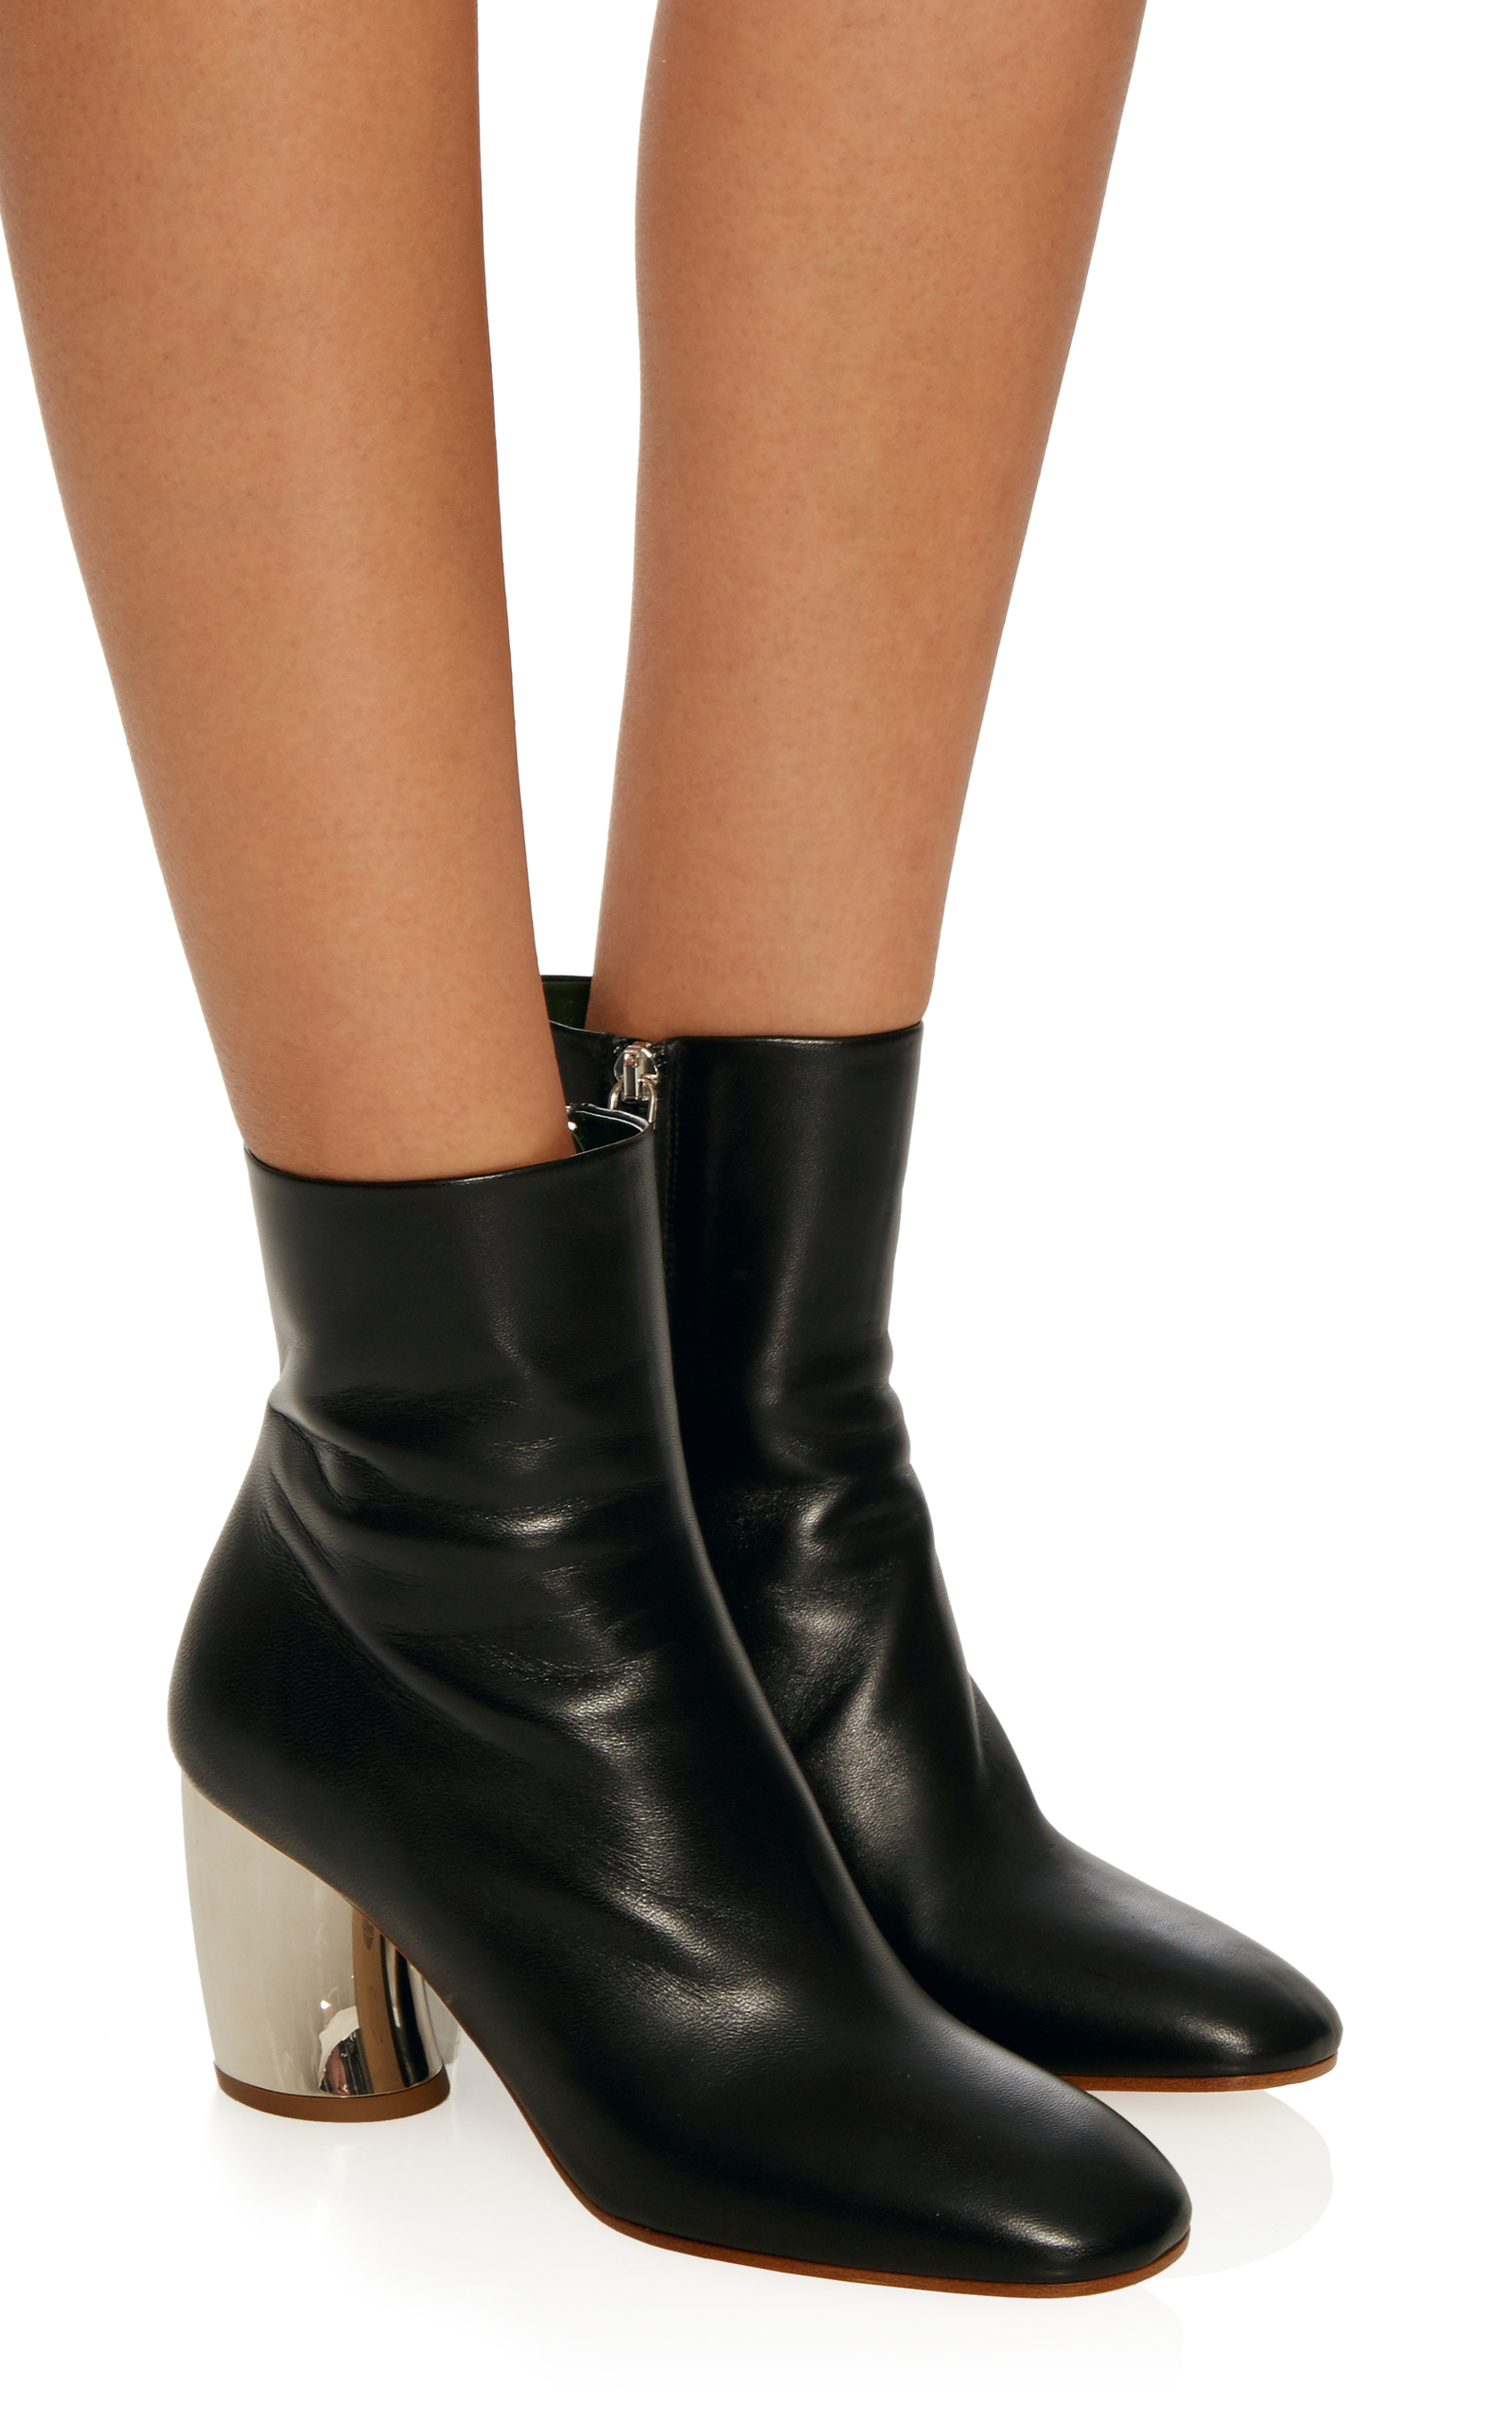 These ankle boots are perfect for all of the trousers options. High enough to just tuck under the cuff or leave the perfect amount of skin showing. With a block heel these Proenza Schouler boots are super comfortable and the soft leather stands up to winter conditions.